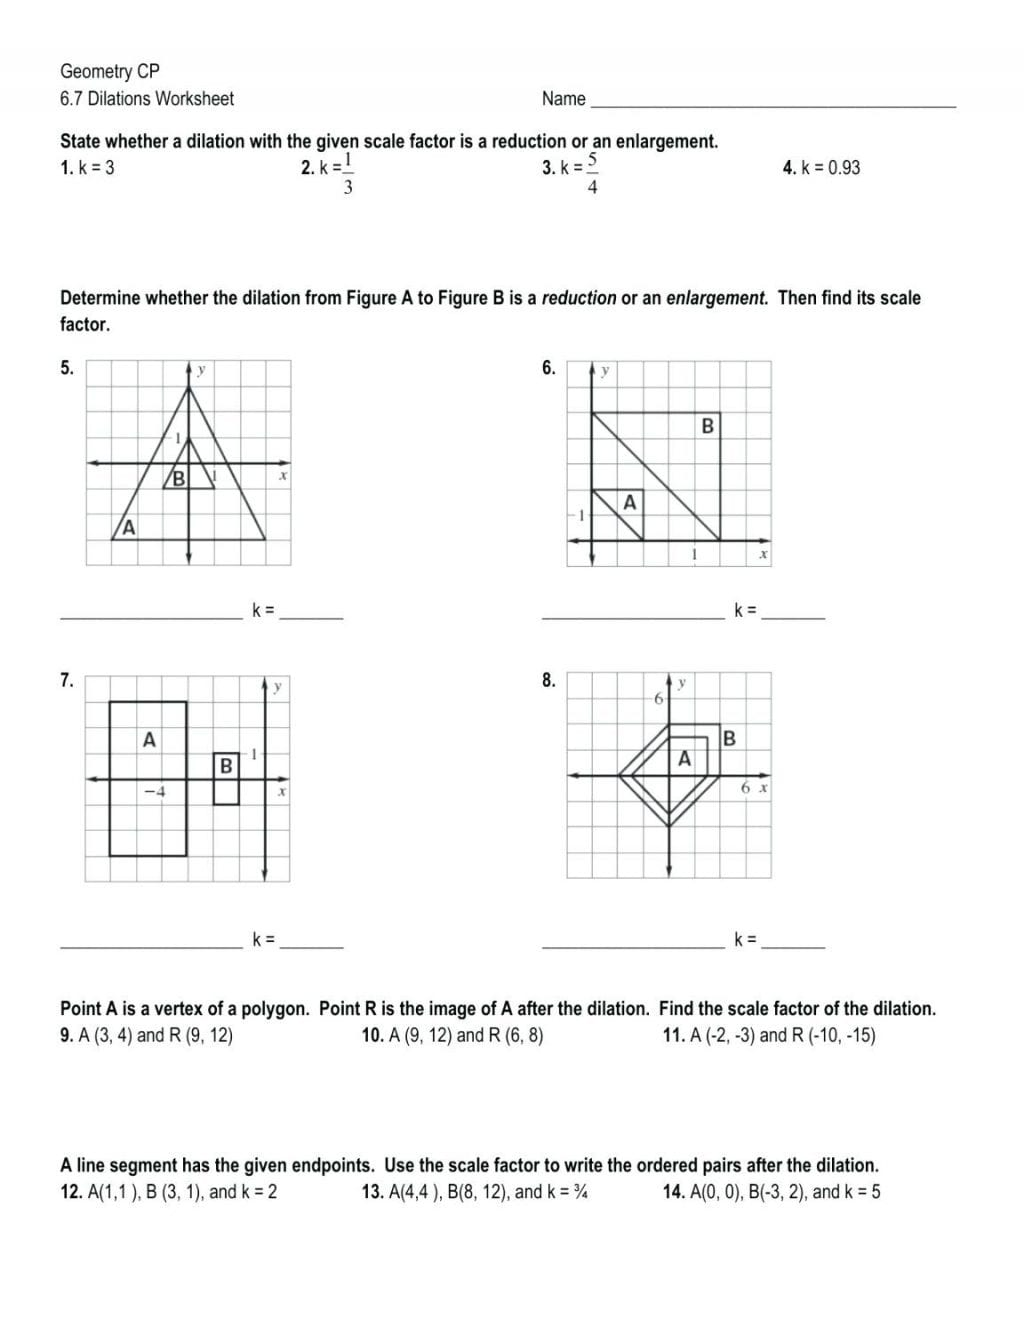 Geometry Cp 6 7 Dilations Worksheet Answers